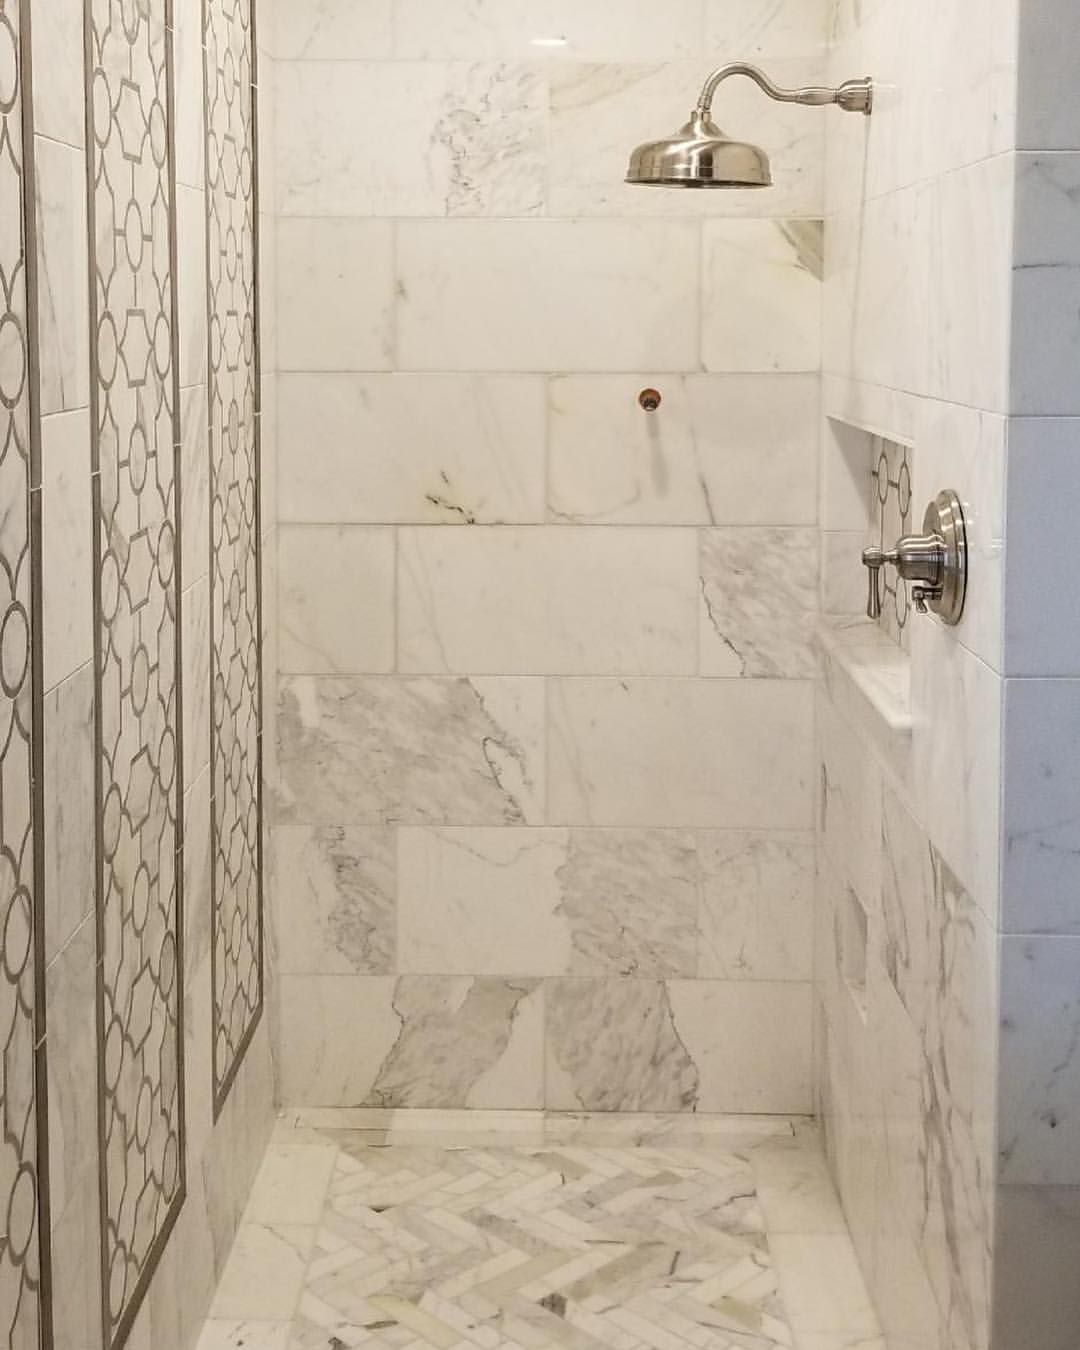 Calacatta Gold Master Bathroom Remodel Featuring The Beautiful